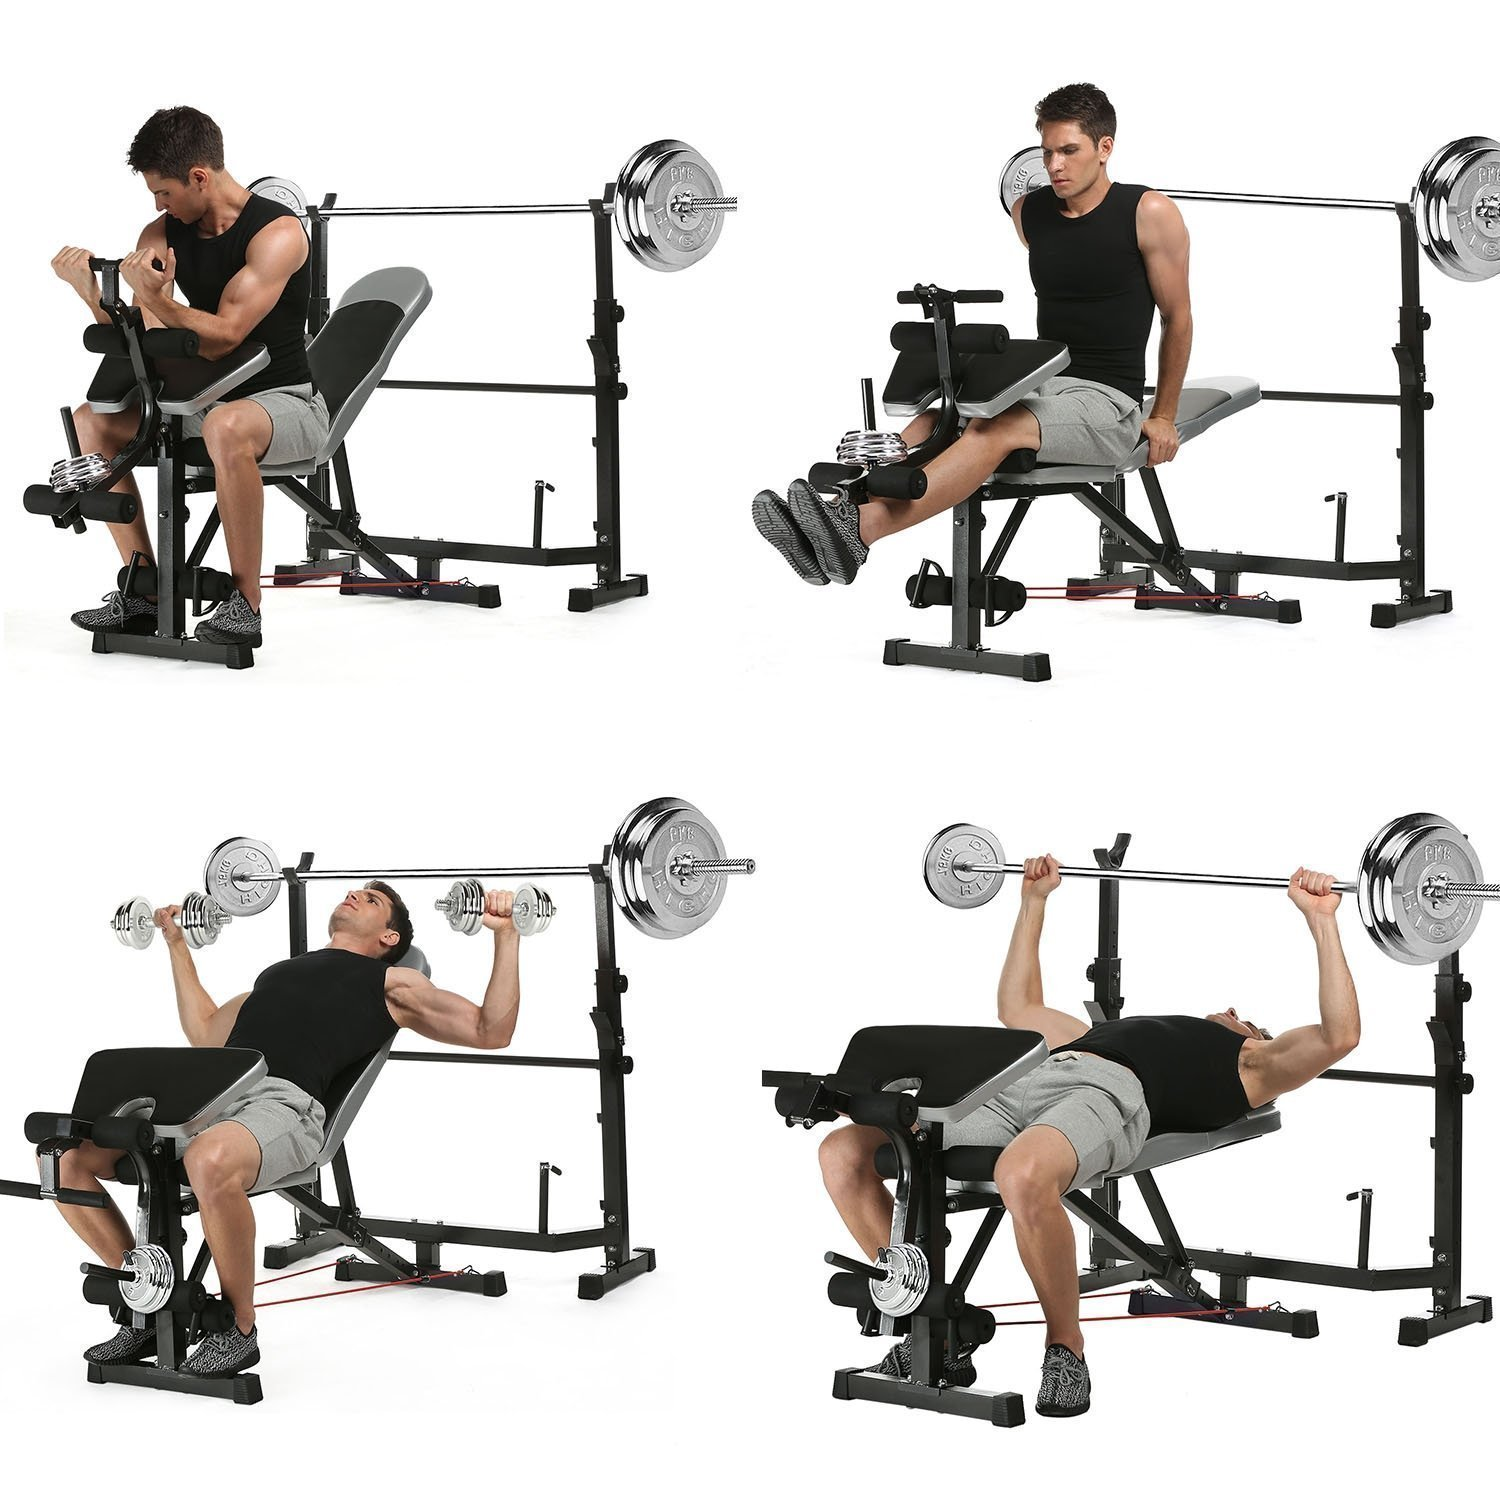 Fashine Multi-Function Weight Bench Set, 660 lbs Foldable Olympic Weight Bench, Adjustable Barbell Bench Set for Home Gym Fitness(US STOCK)